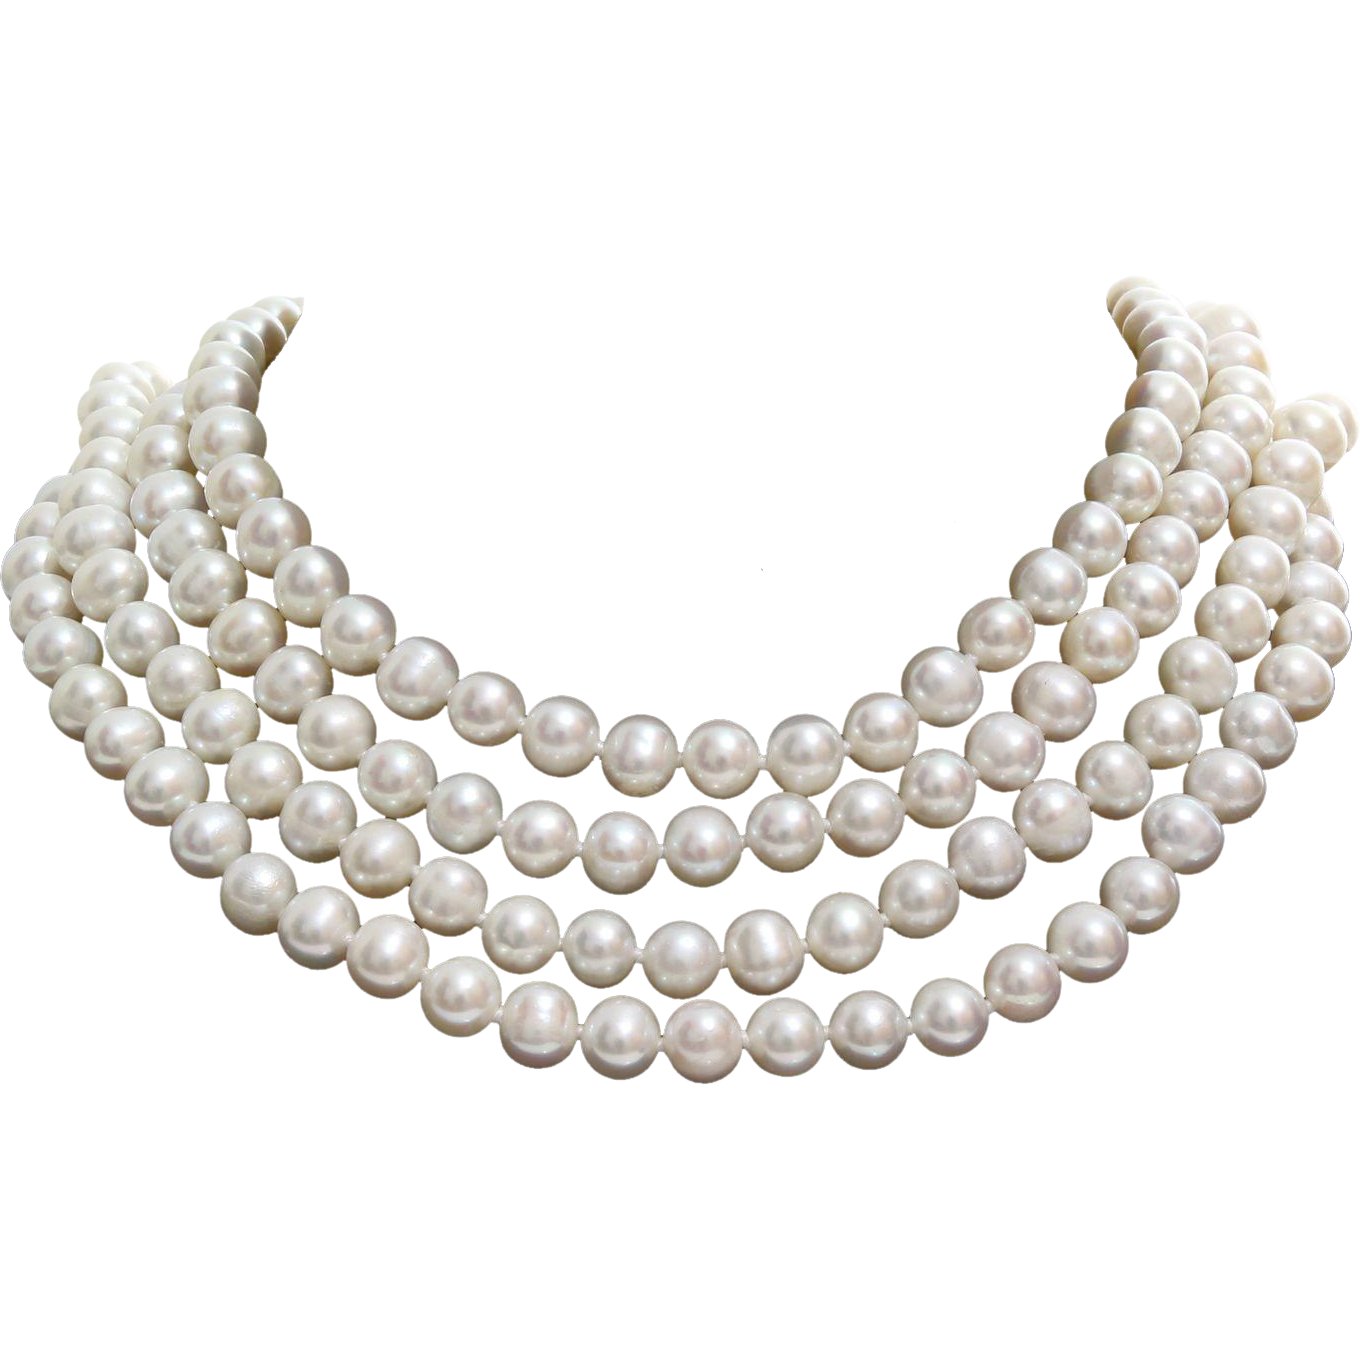 Vintage Pearl Necklace Rope Lariat Length Cultured